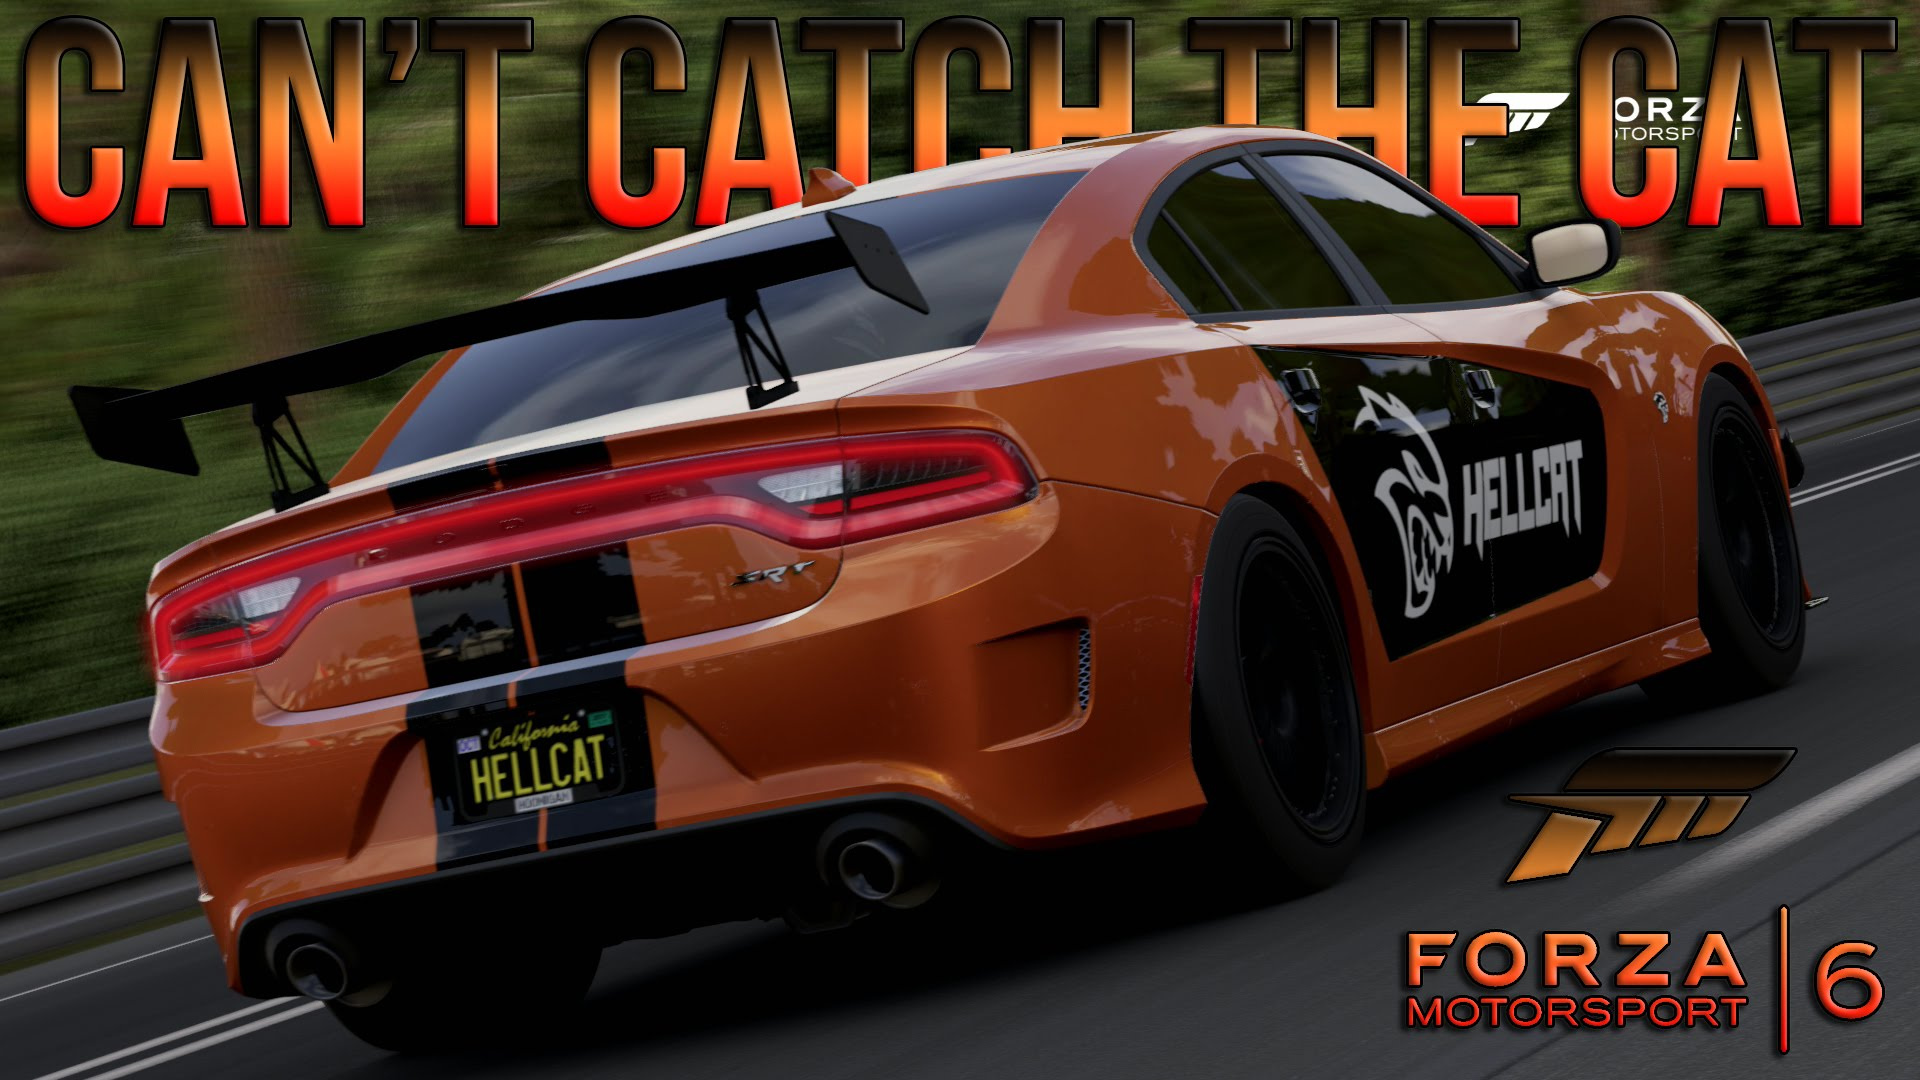 Dodge Charger Hellcat Forza6 Livery Gta5 Mods Com